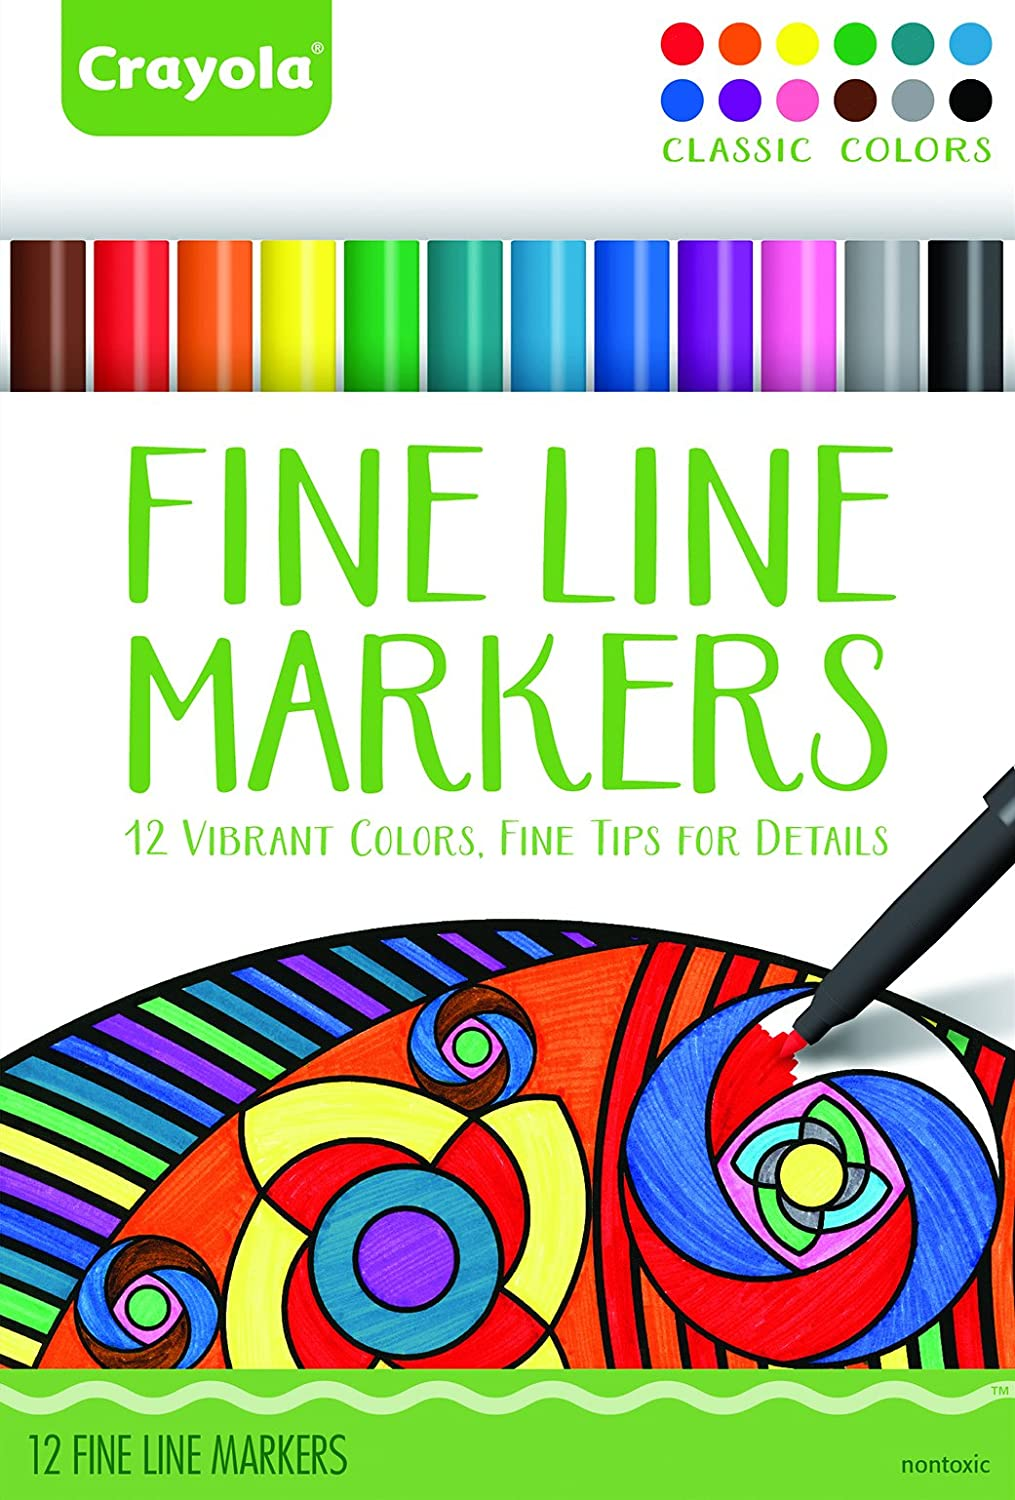 Amazon.com: Crayola 58-7713 Fineline Markers 12 Vibrant Colors with ...